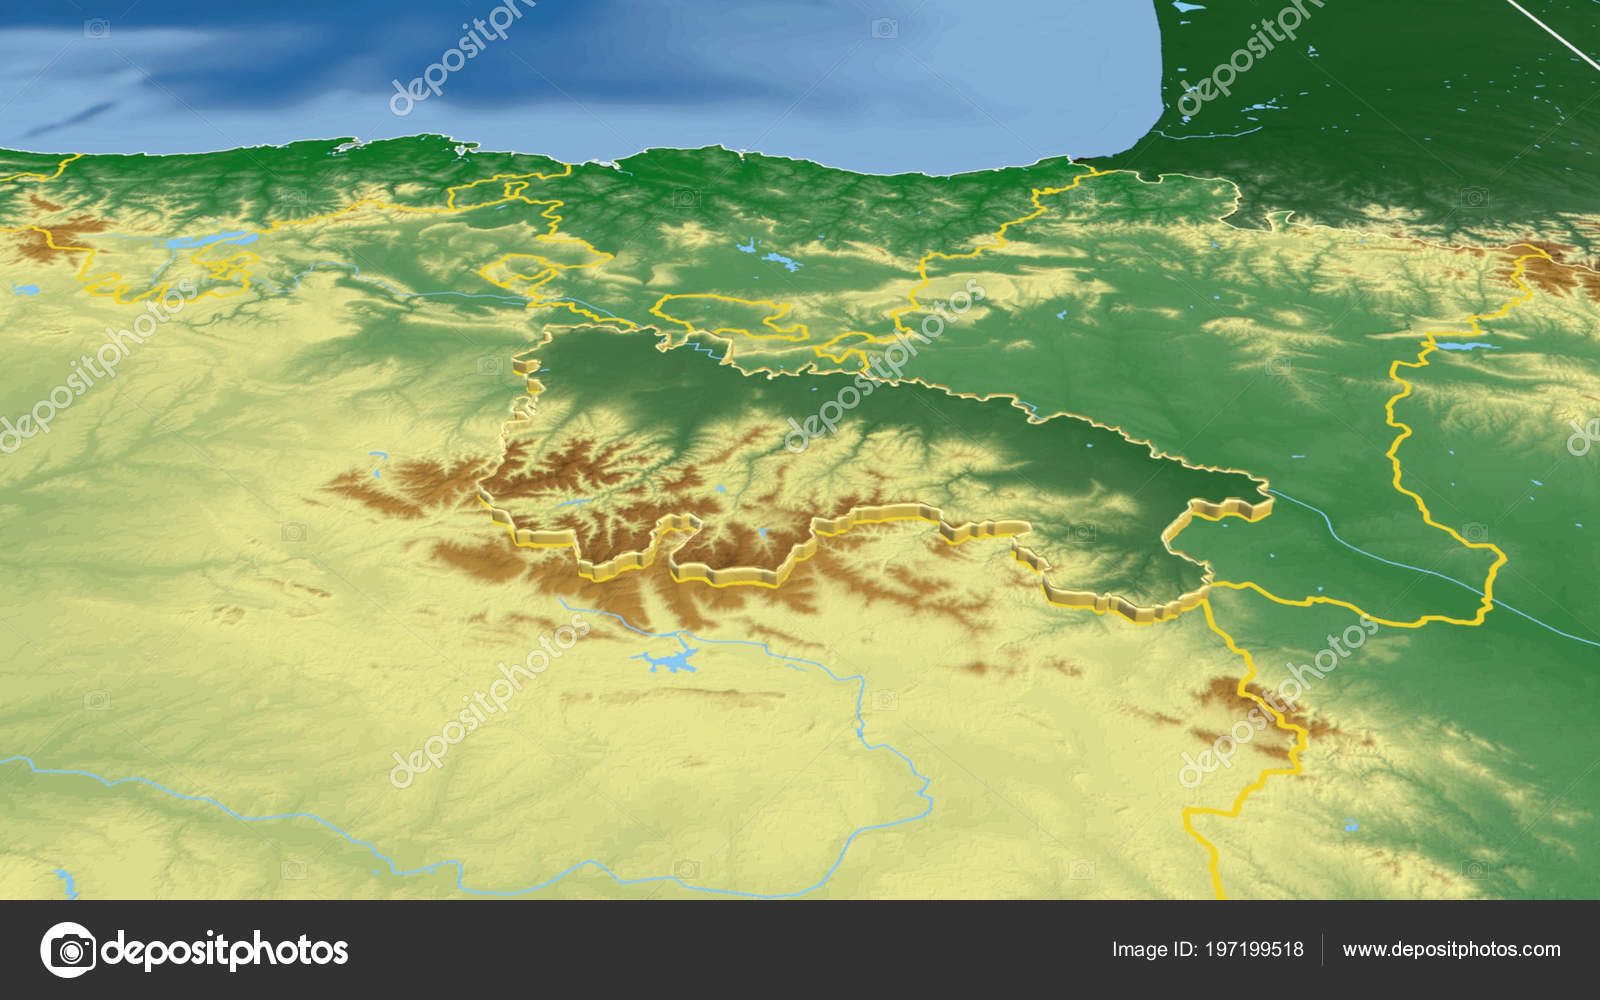 Rioja Region Spain Map.Rioja Region Spain Extruded Color Physical Map Stock Photo